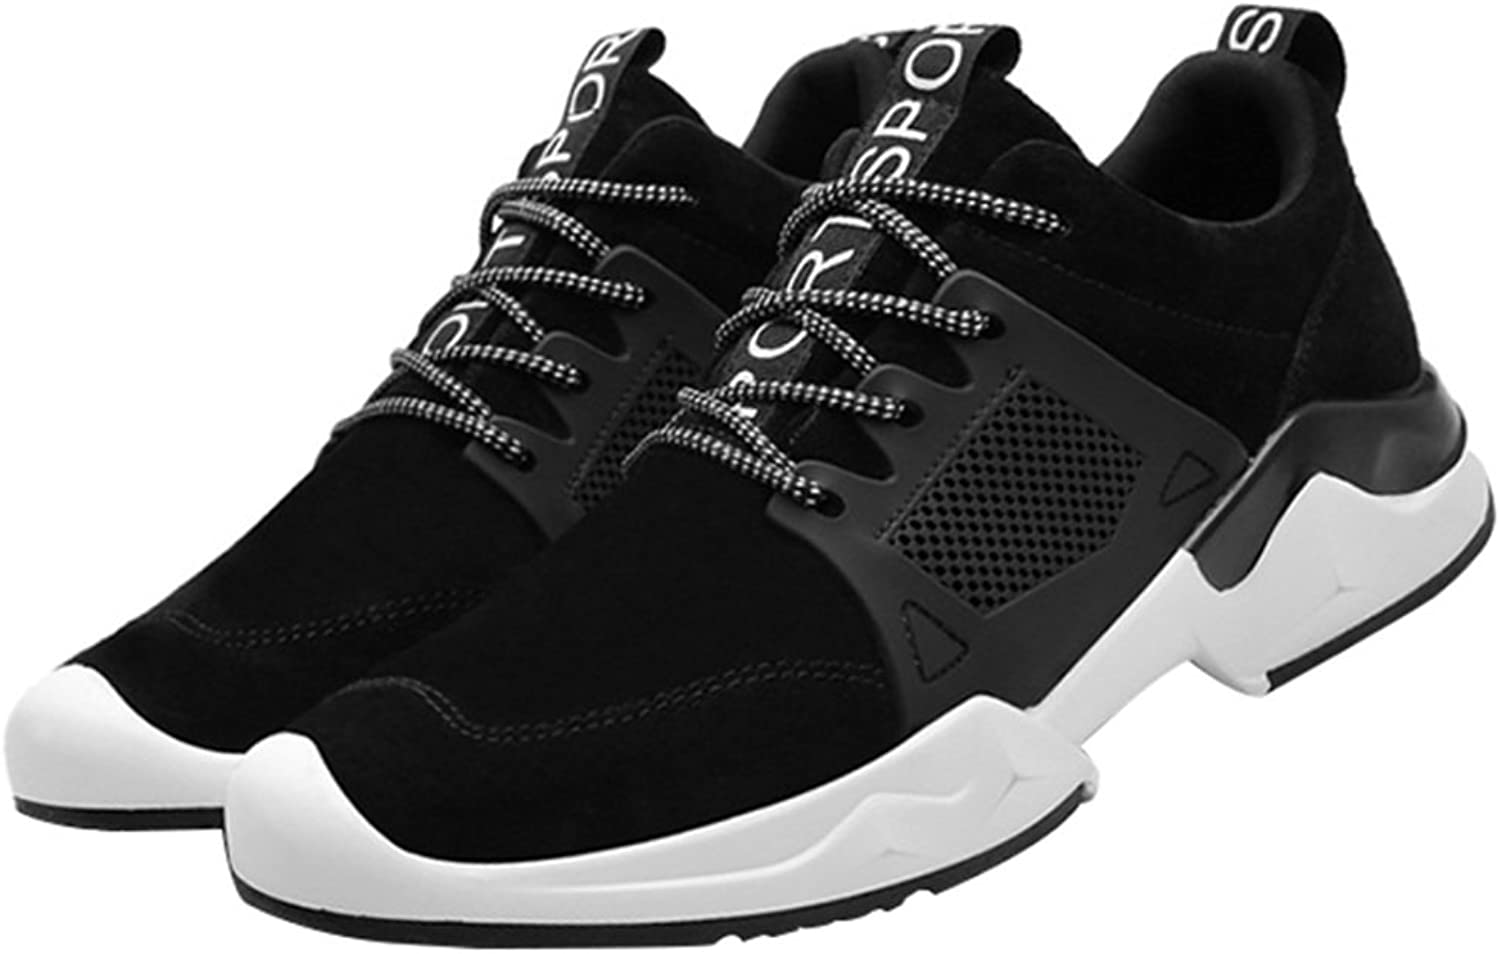 Men's Casual Sports shoes Fashion Personality shoes Sneakers